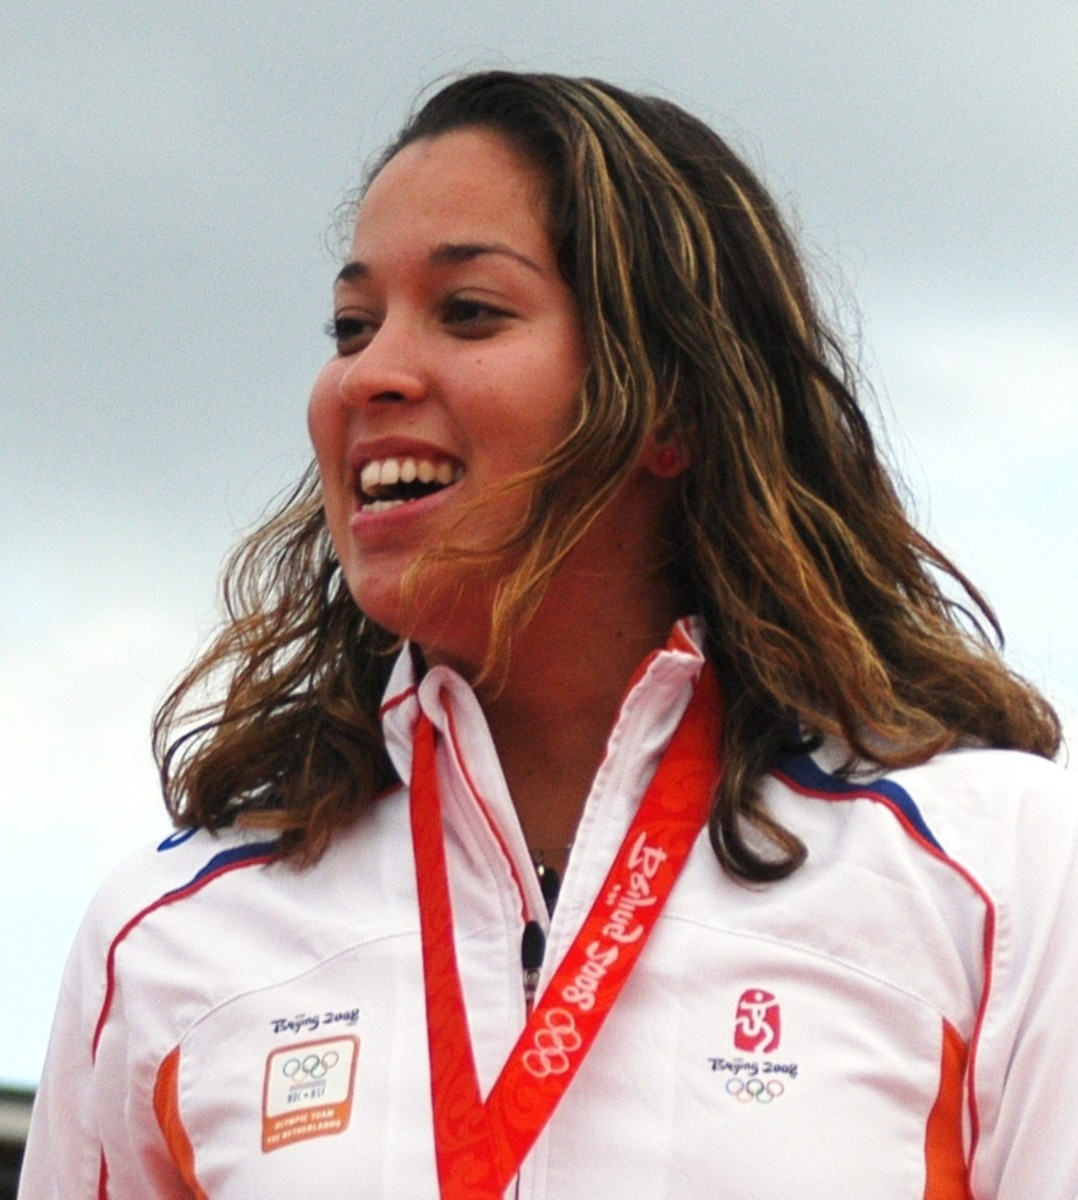 Ranomi Kromowidjojo, The Freestyle Swimmer That Had One of the Best Years of Her Life in 2012